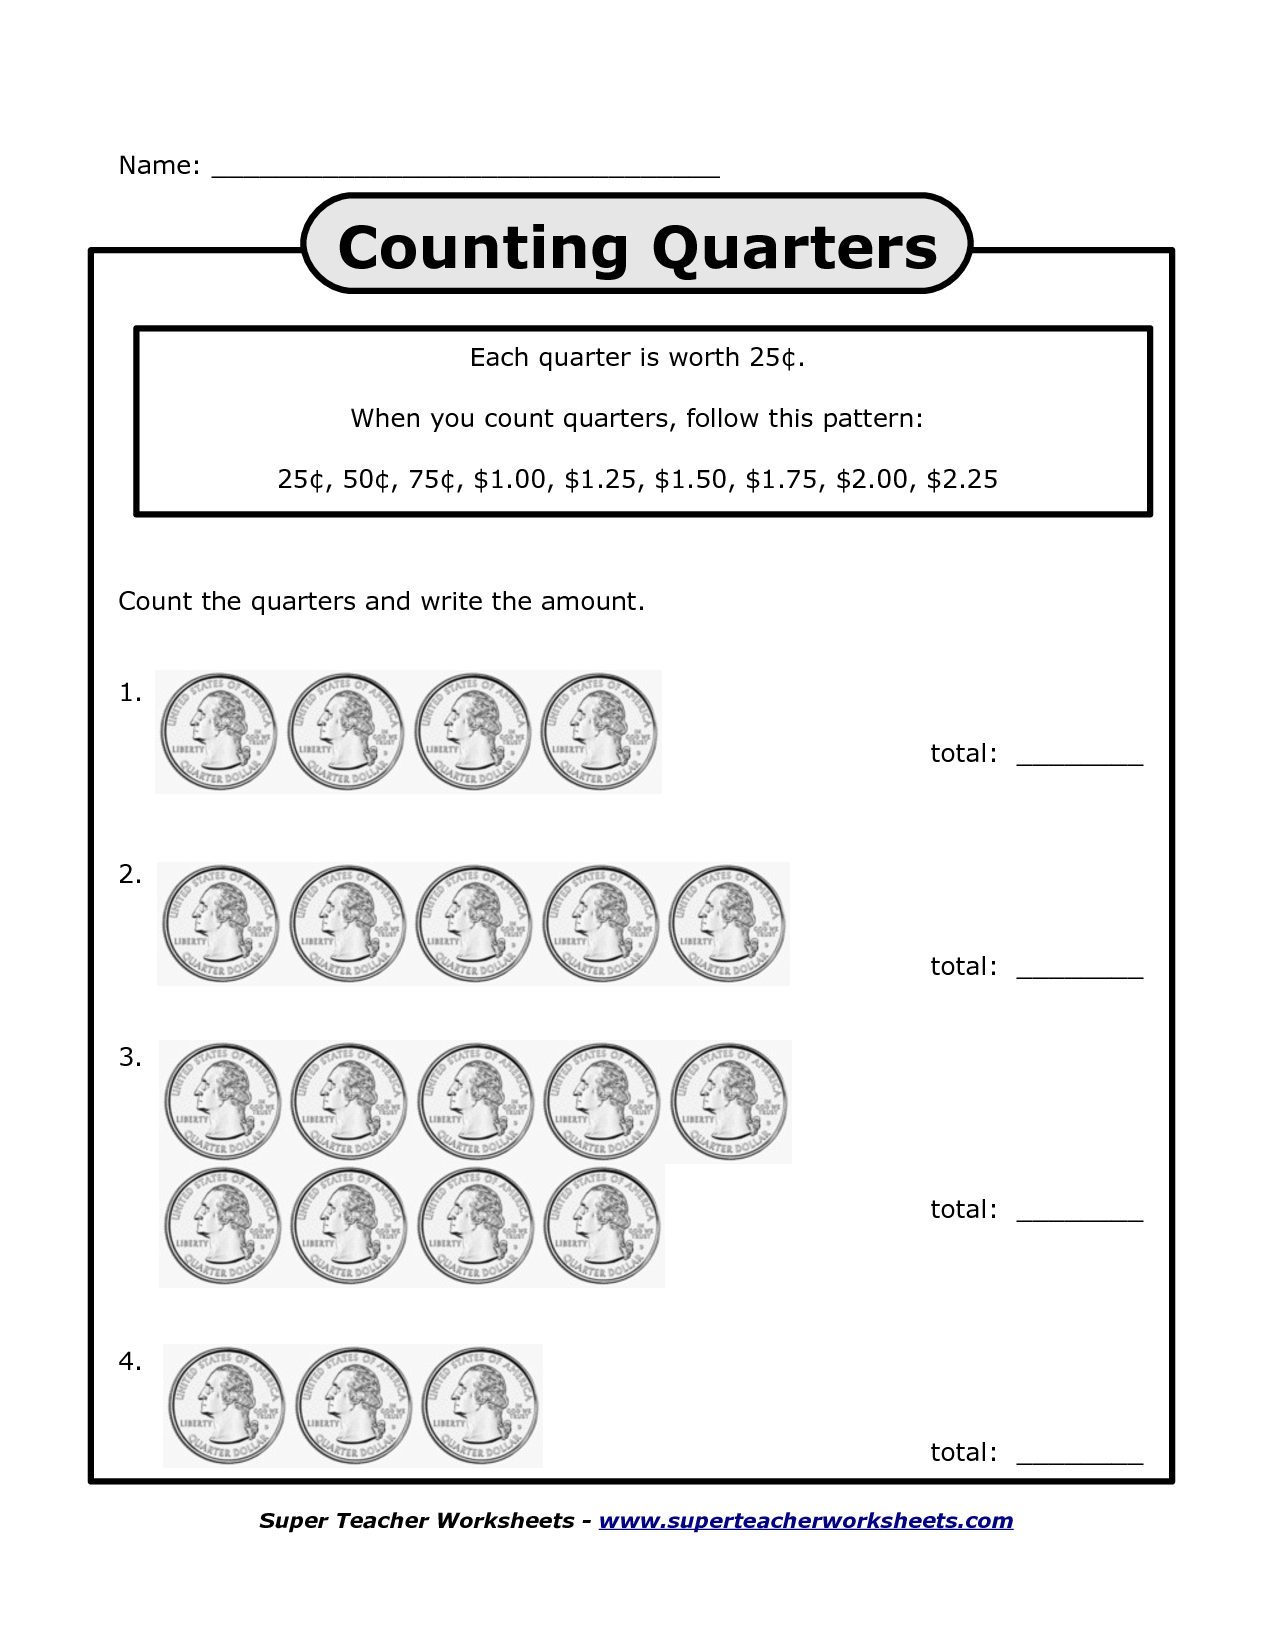 Counting Quarters Worksheets